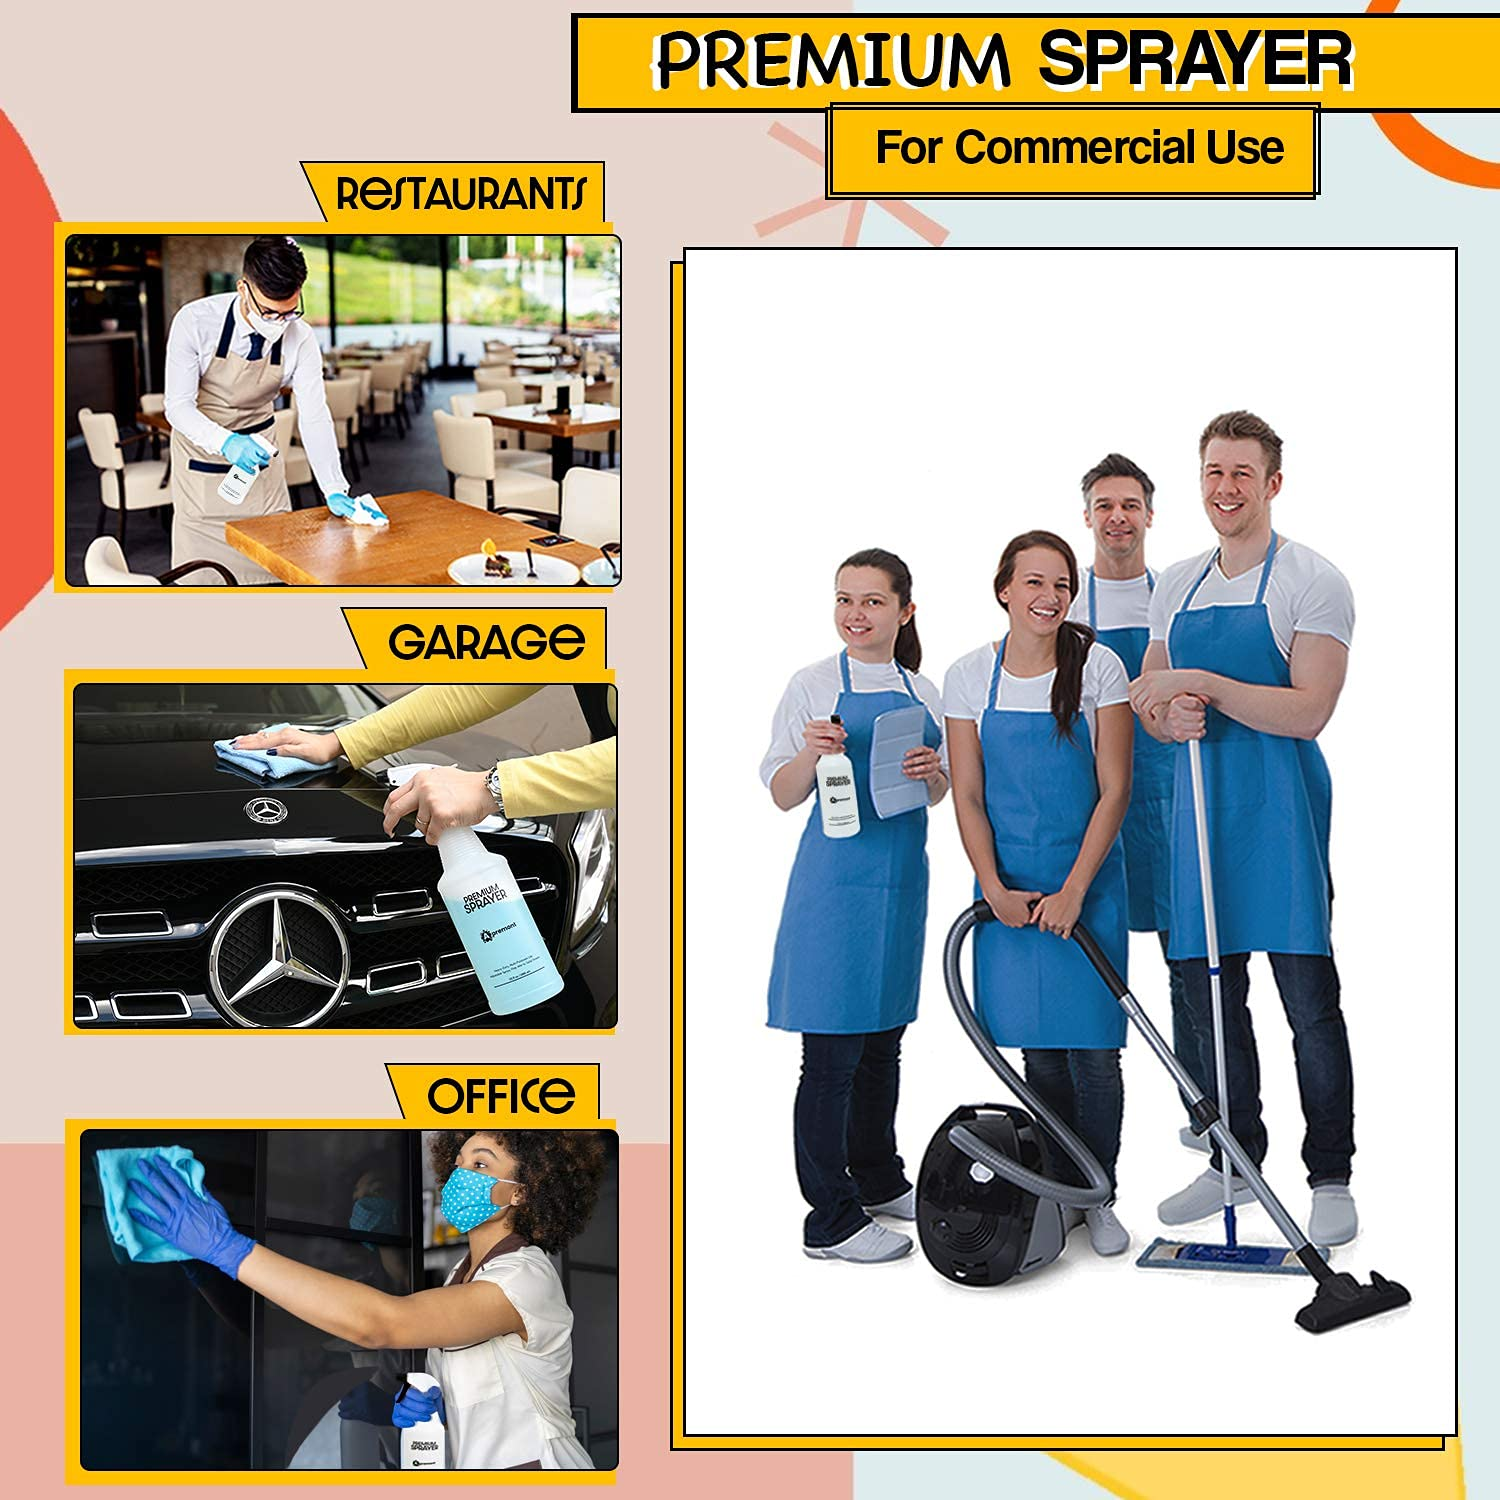 Apremont sanitizing Spray or Squirt Bottles Heavy Duty Spray Bottle 4 Pack 32oz Upgraded Sprayer Empty Spray Bottle for Cleaning Solutions Leak Proof Industrial Water Mist with Adjustable Nozzle